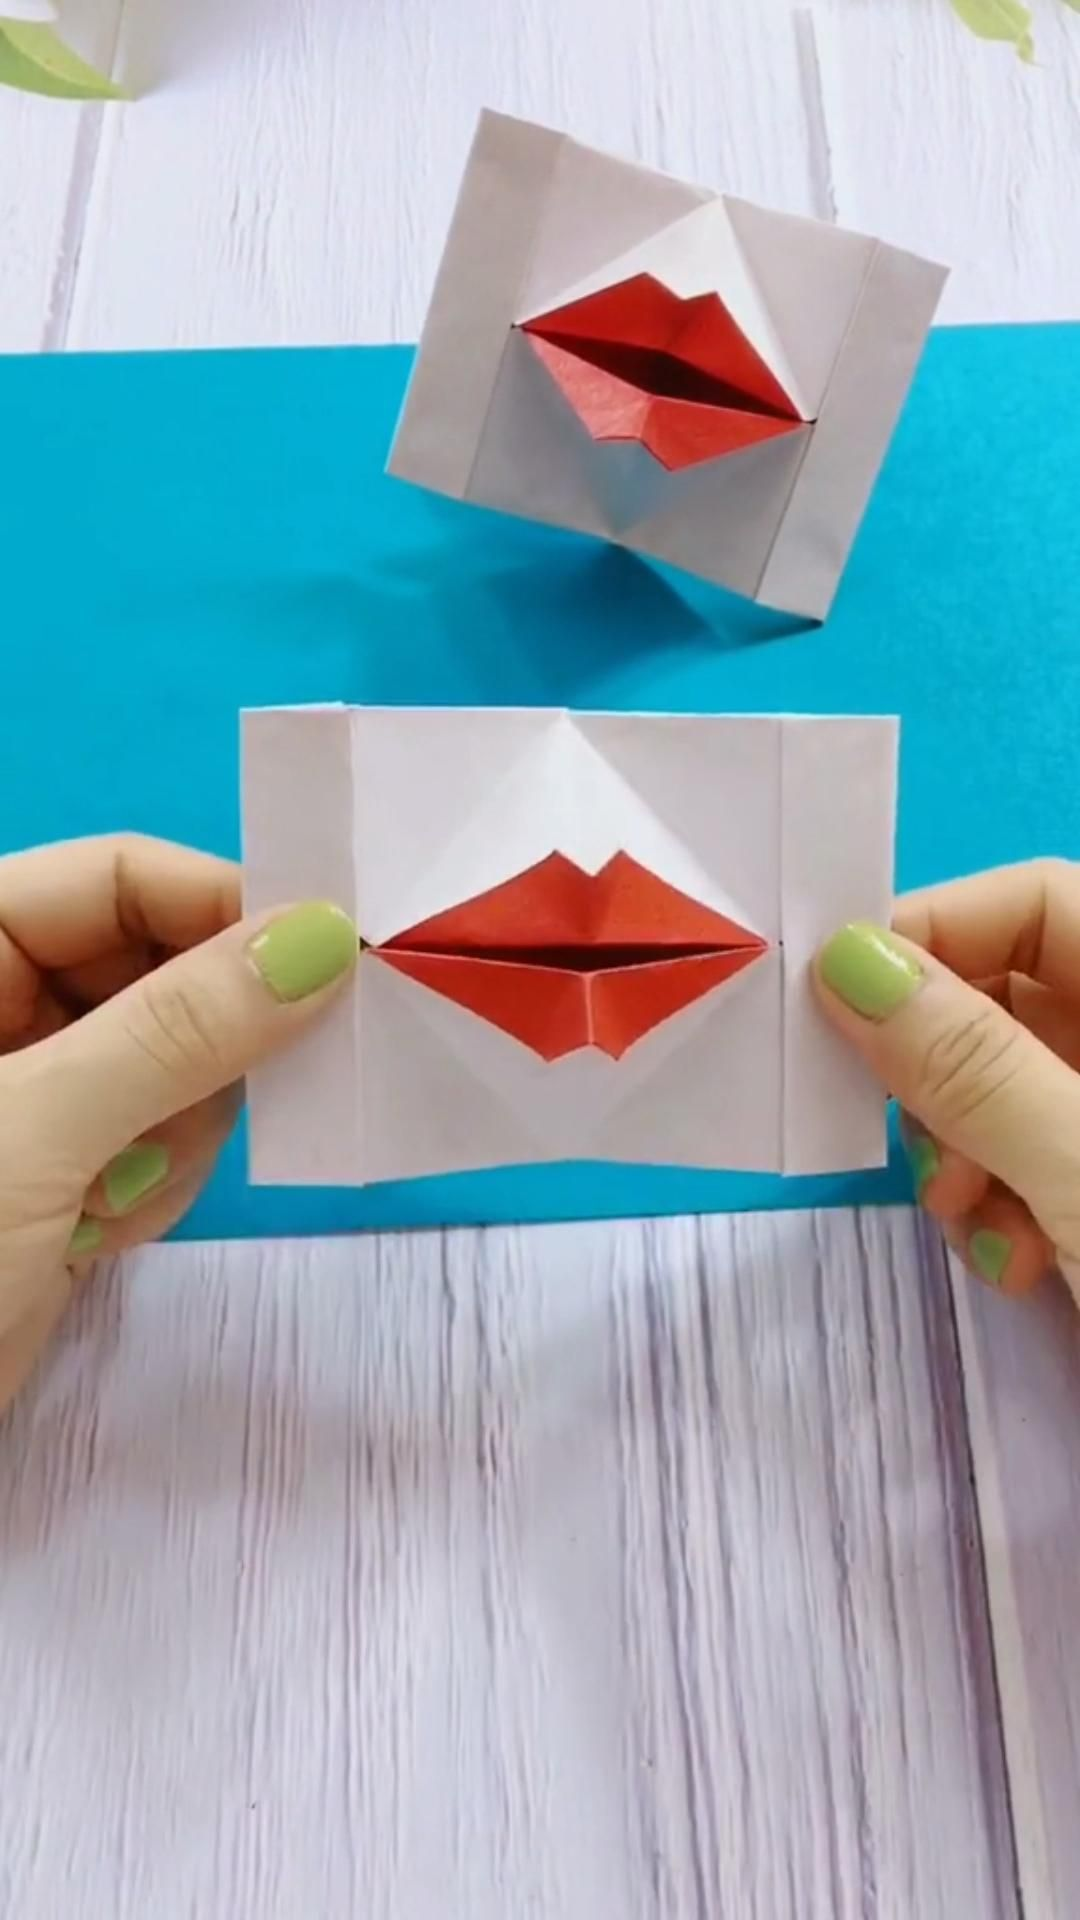 The 3D origami lips make a kissing motion as you open and close the card. It is great gift for Christmas, Valentine's Day, a birthday, or an anniversary. Just follow my step by step video.